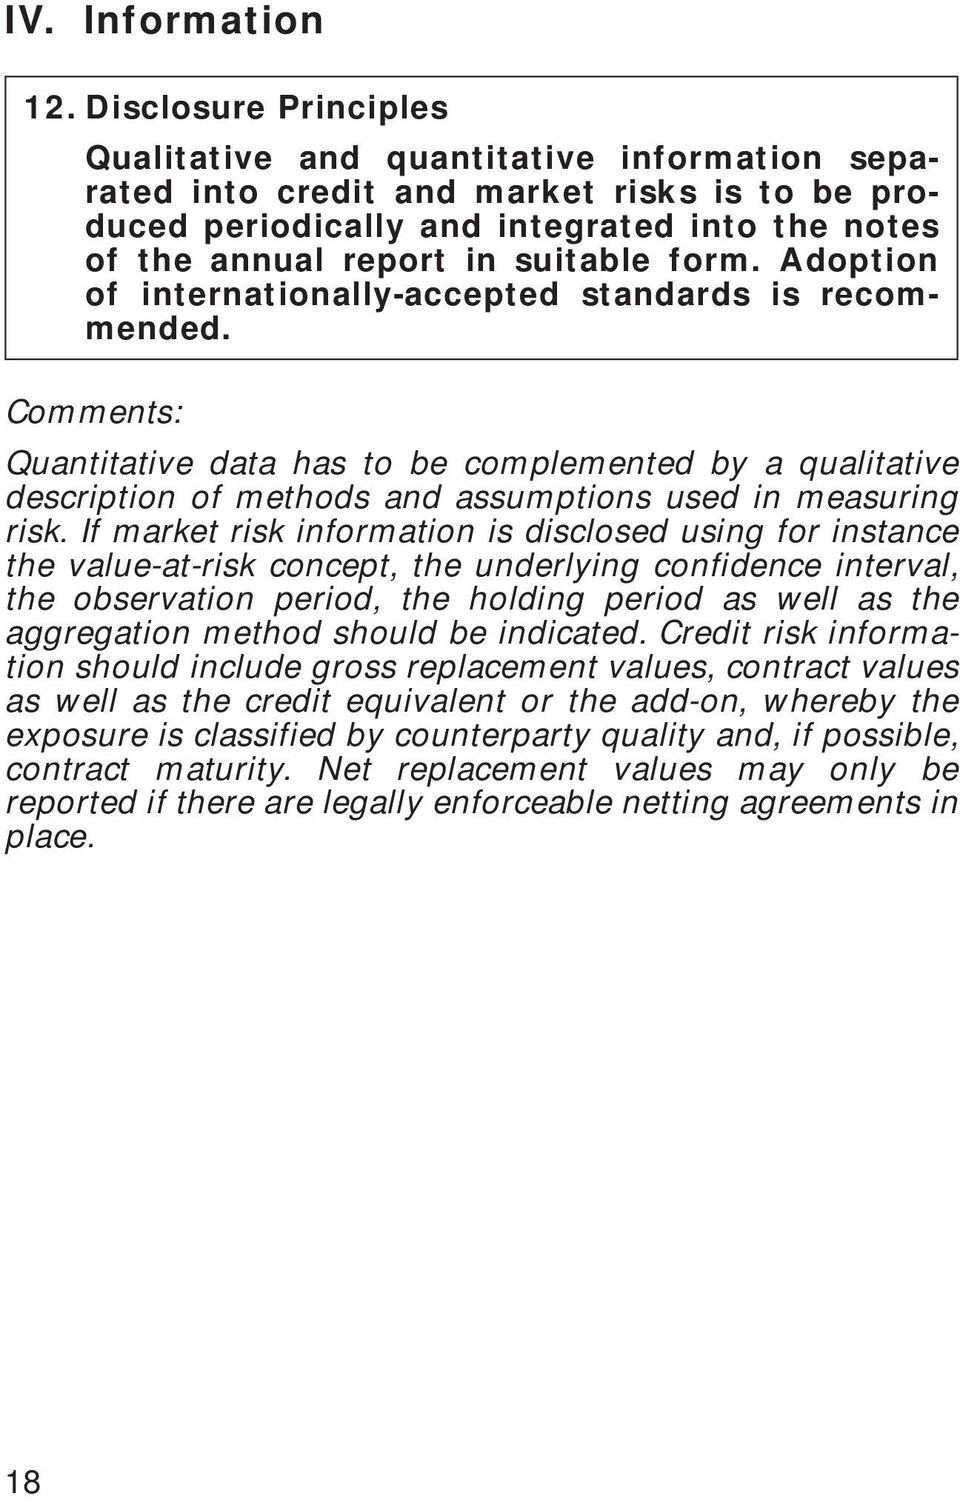 form. Adoption of internationally-accepted standards is recommended. Comments: Quantitative data has to be complemented by a qualitative description of methods and assumptions used in measuring risk.